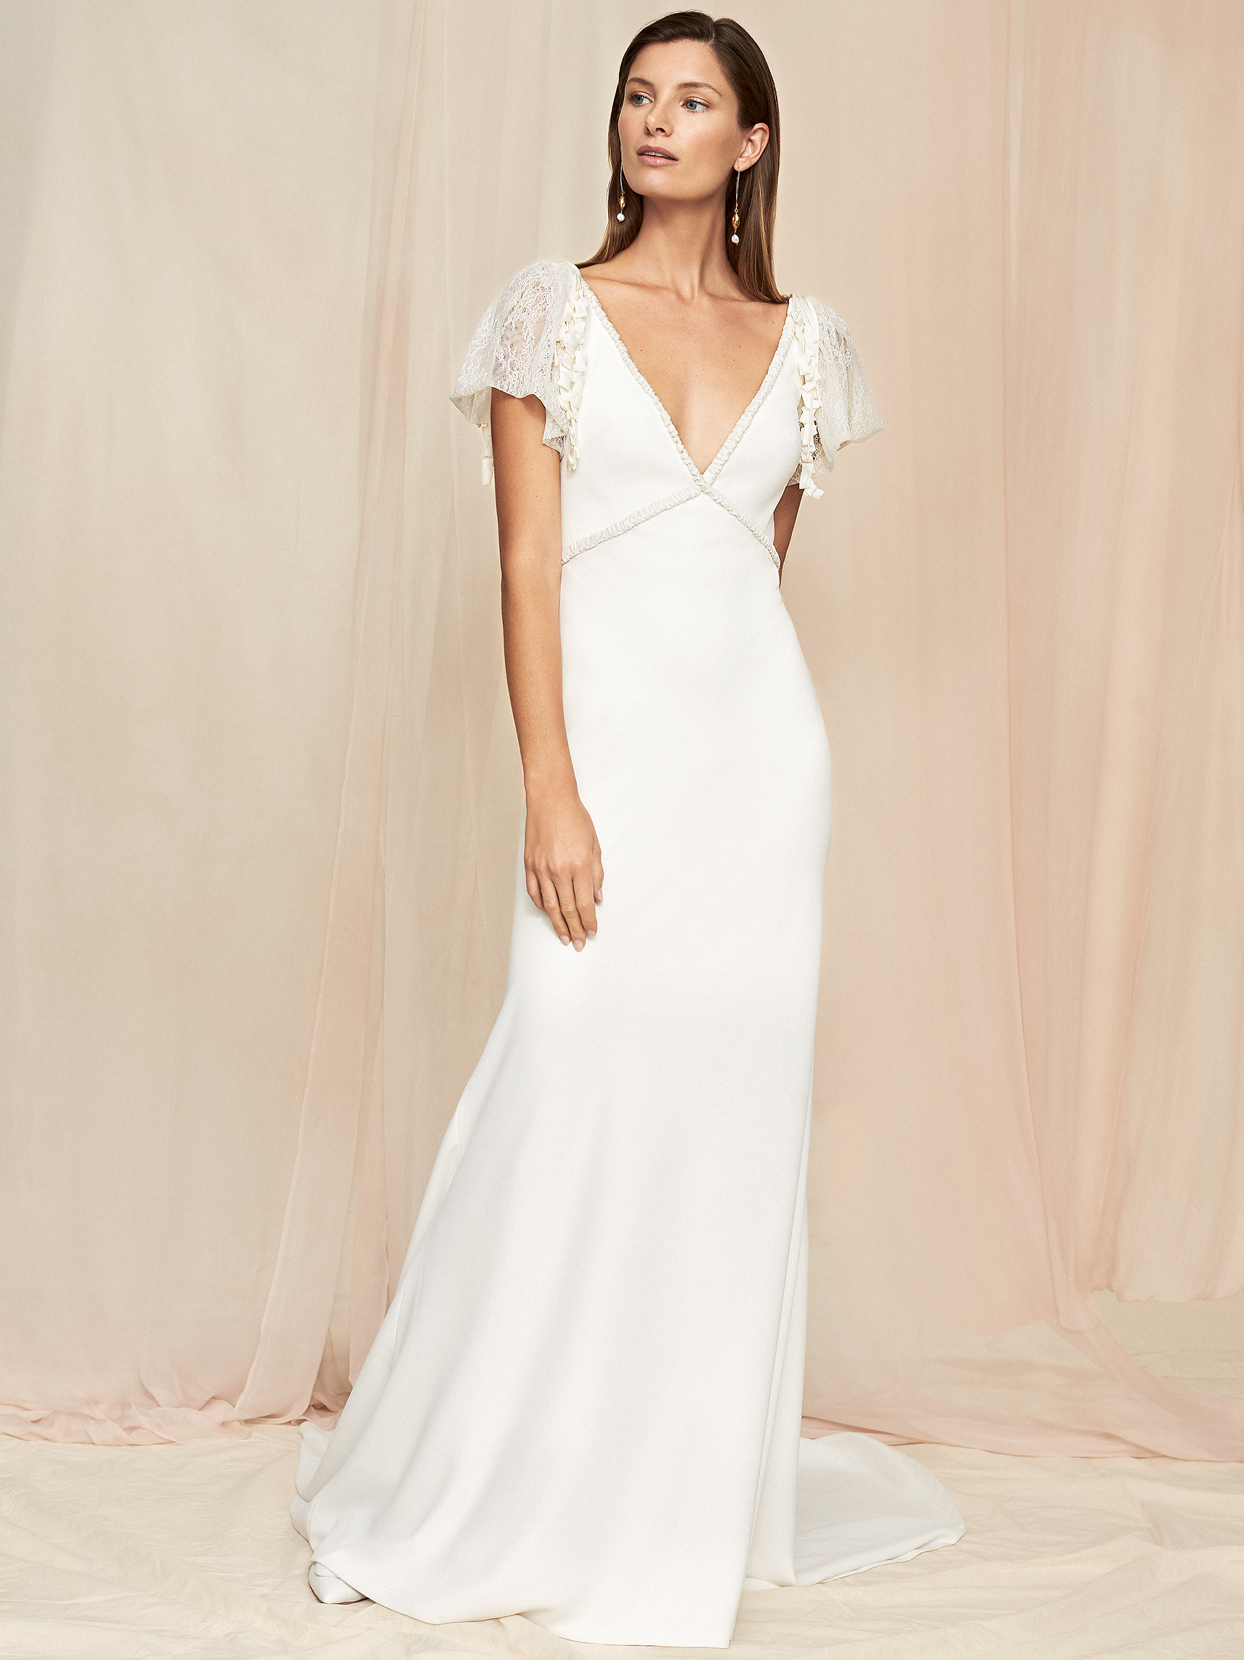 Savannah Miller short flutter sleeve v-neck sheath wedding dress fall 2020